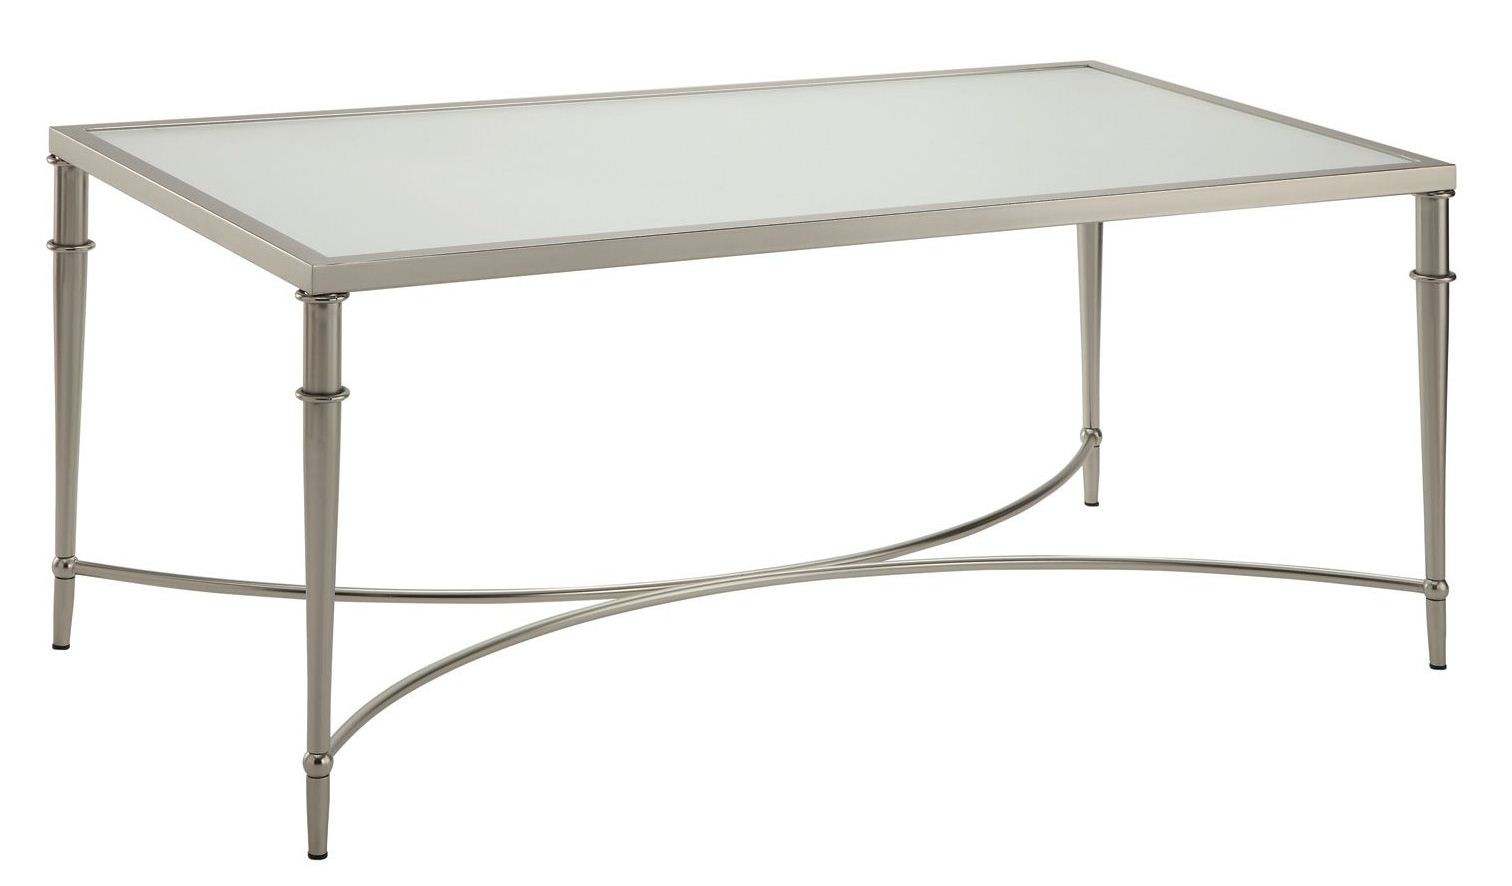 703348 Satin Nickel Coffee Table From Coaster 703348 Coleman Furniture